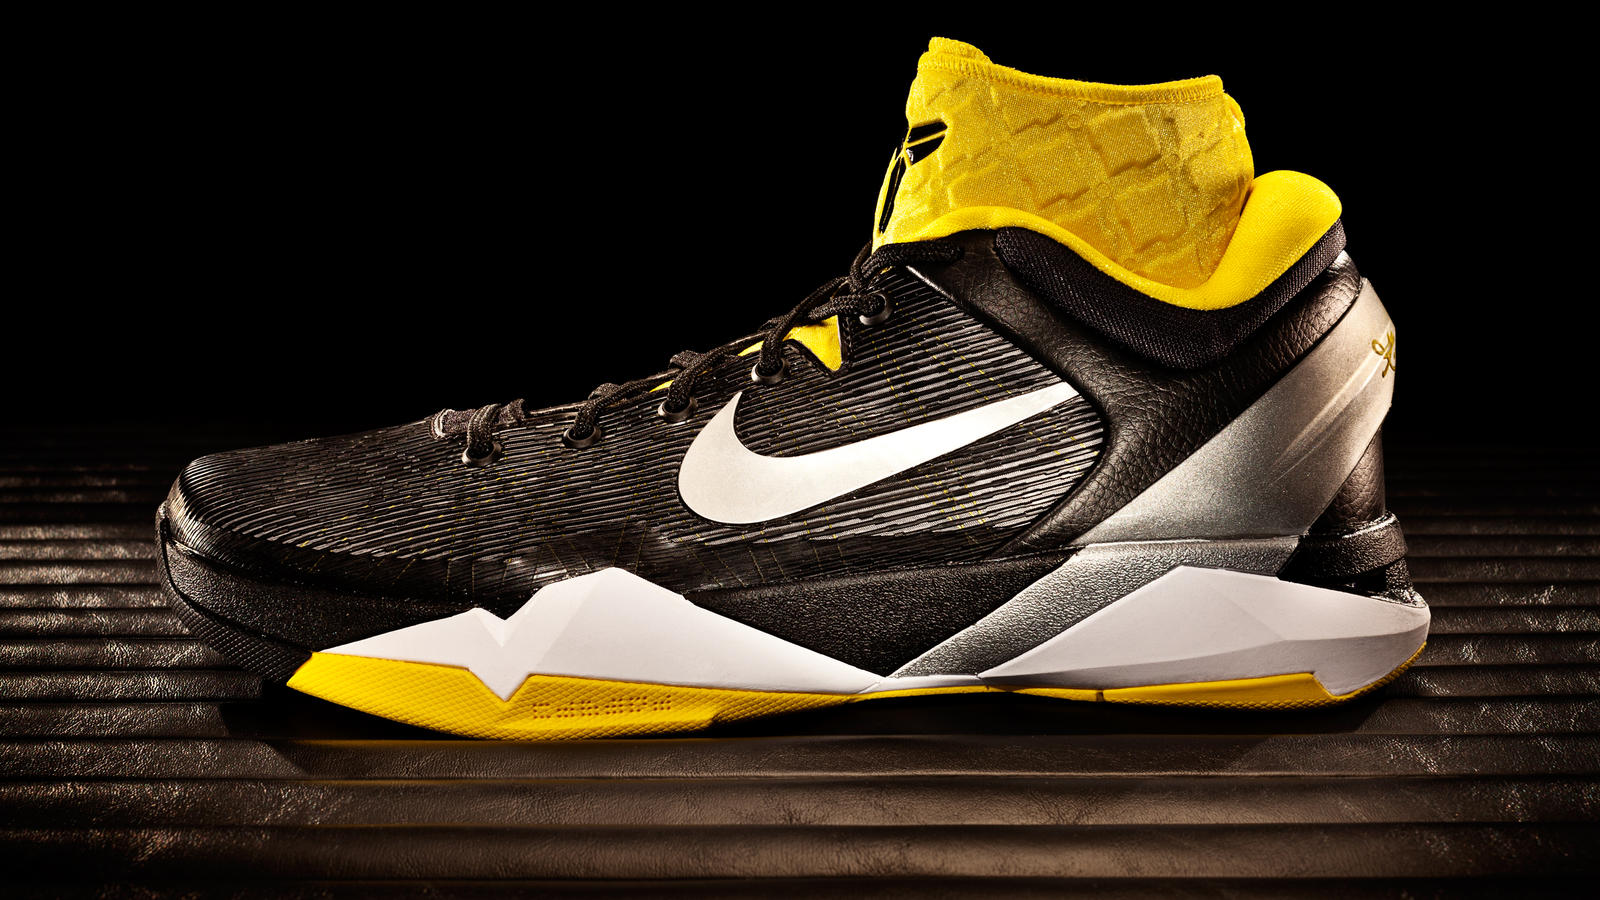 new arrival 9dd54 91037 Nike Zoom Kobe VII - Attack Strong